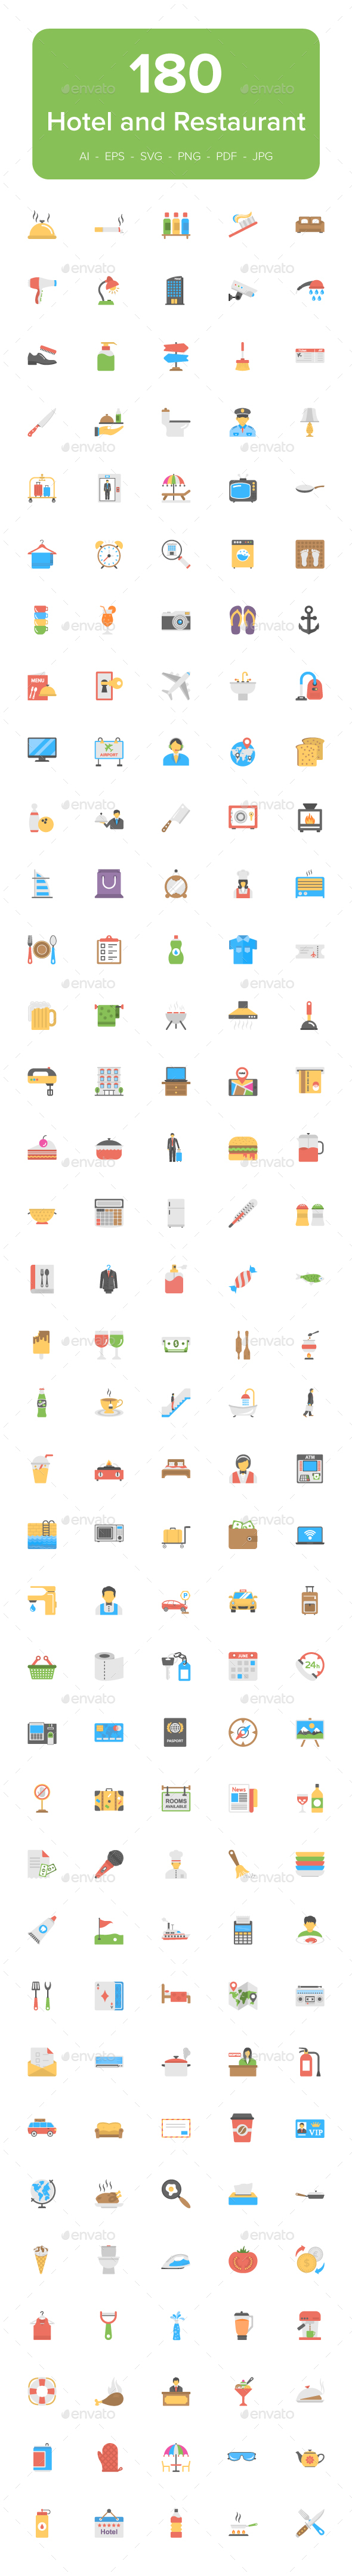 180 Hotel and Restaurant Flat Icons - Icons